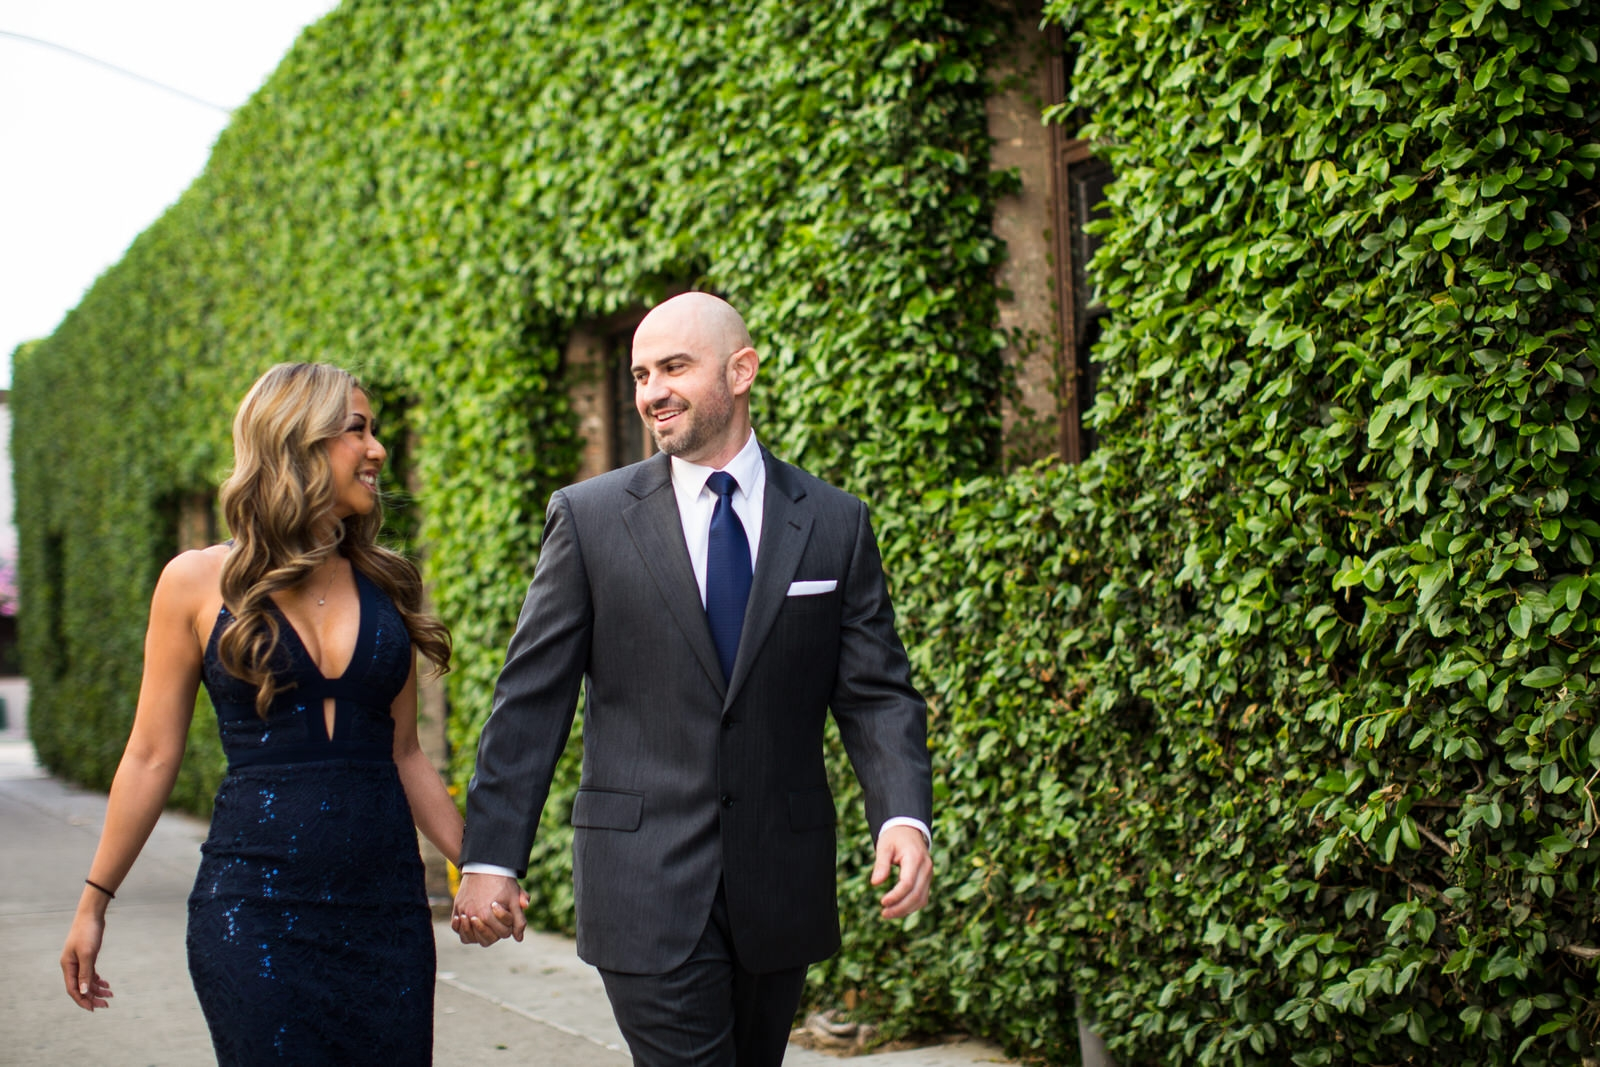 Photo by: @Glenn Pictures | www.glennpictures.com